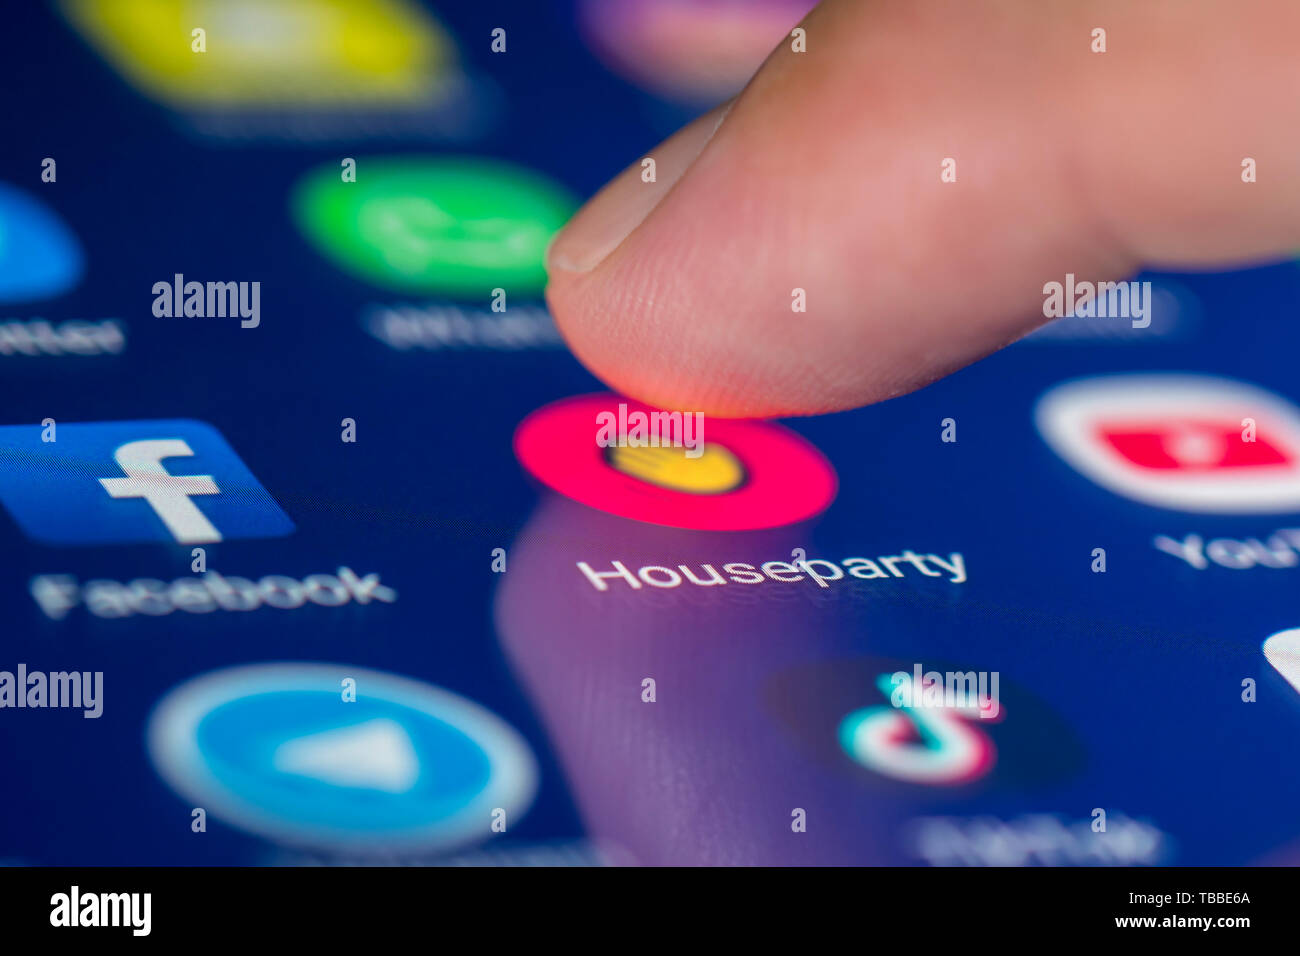 Finger, mit dem ein Symbol auf einem Smartphone oder Tablet-PC Touchscreen die Houseparty social media App zu laden. House party Anwendung. Stockbild